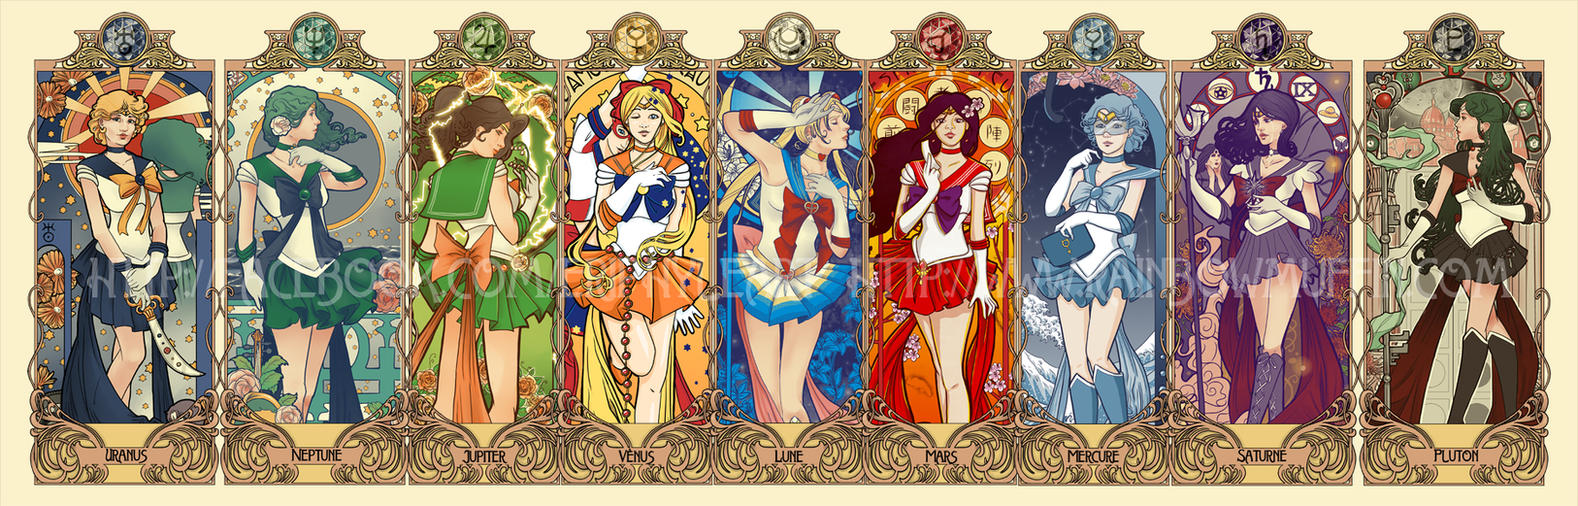 Sailor Moon art nouveau series by eri-phyle